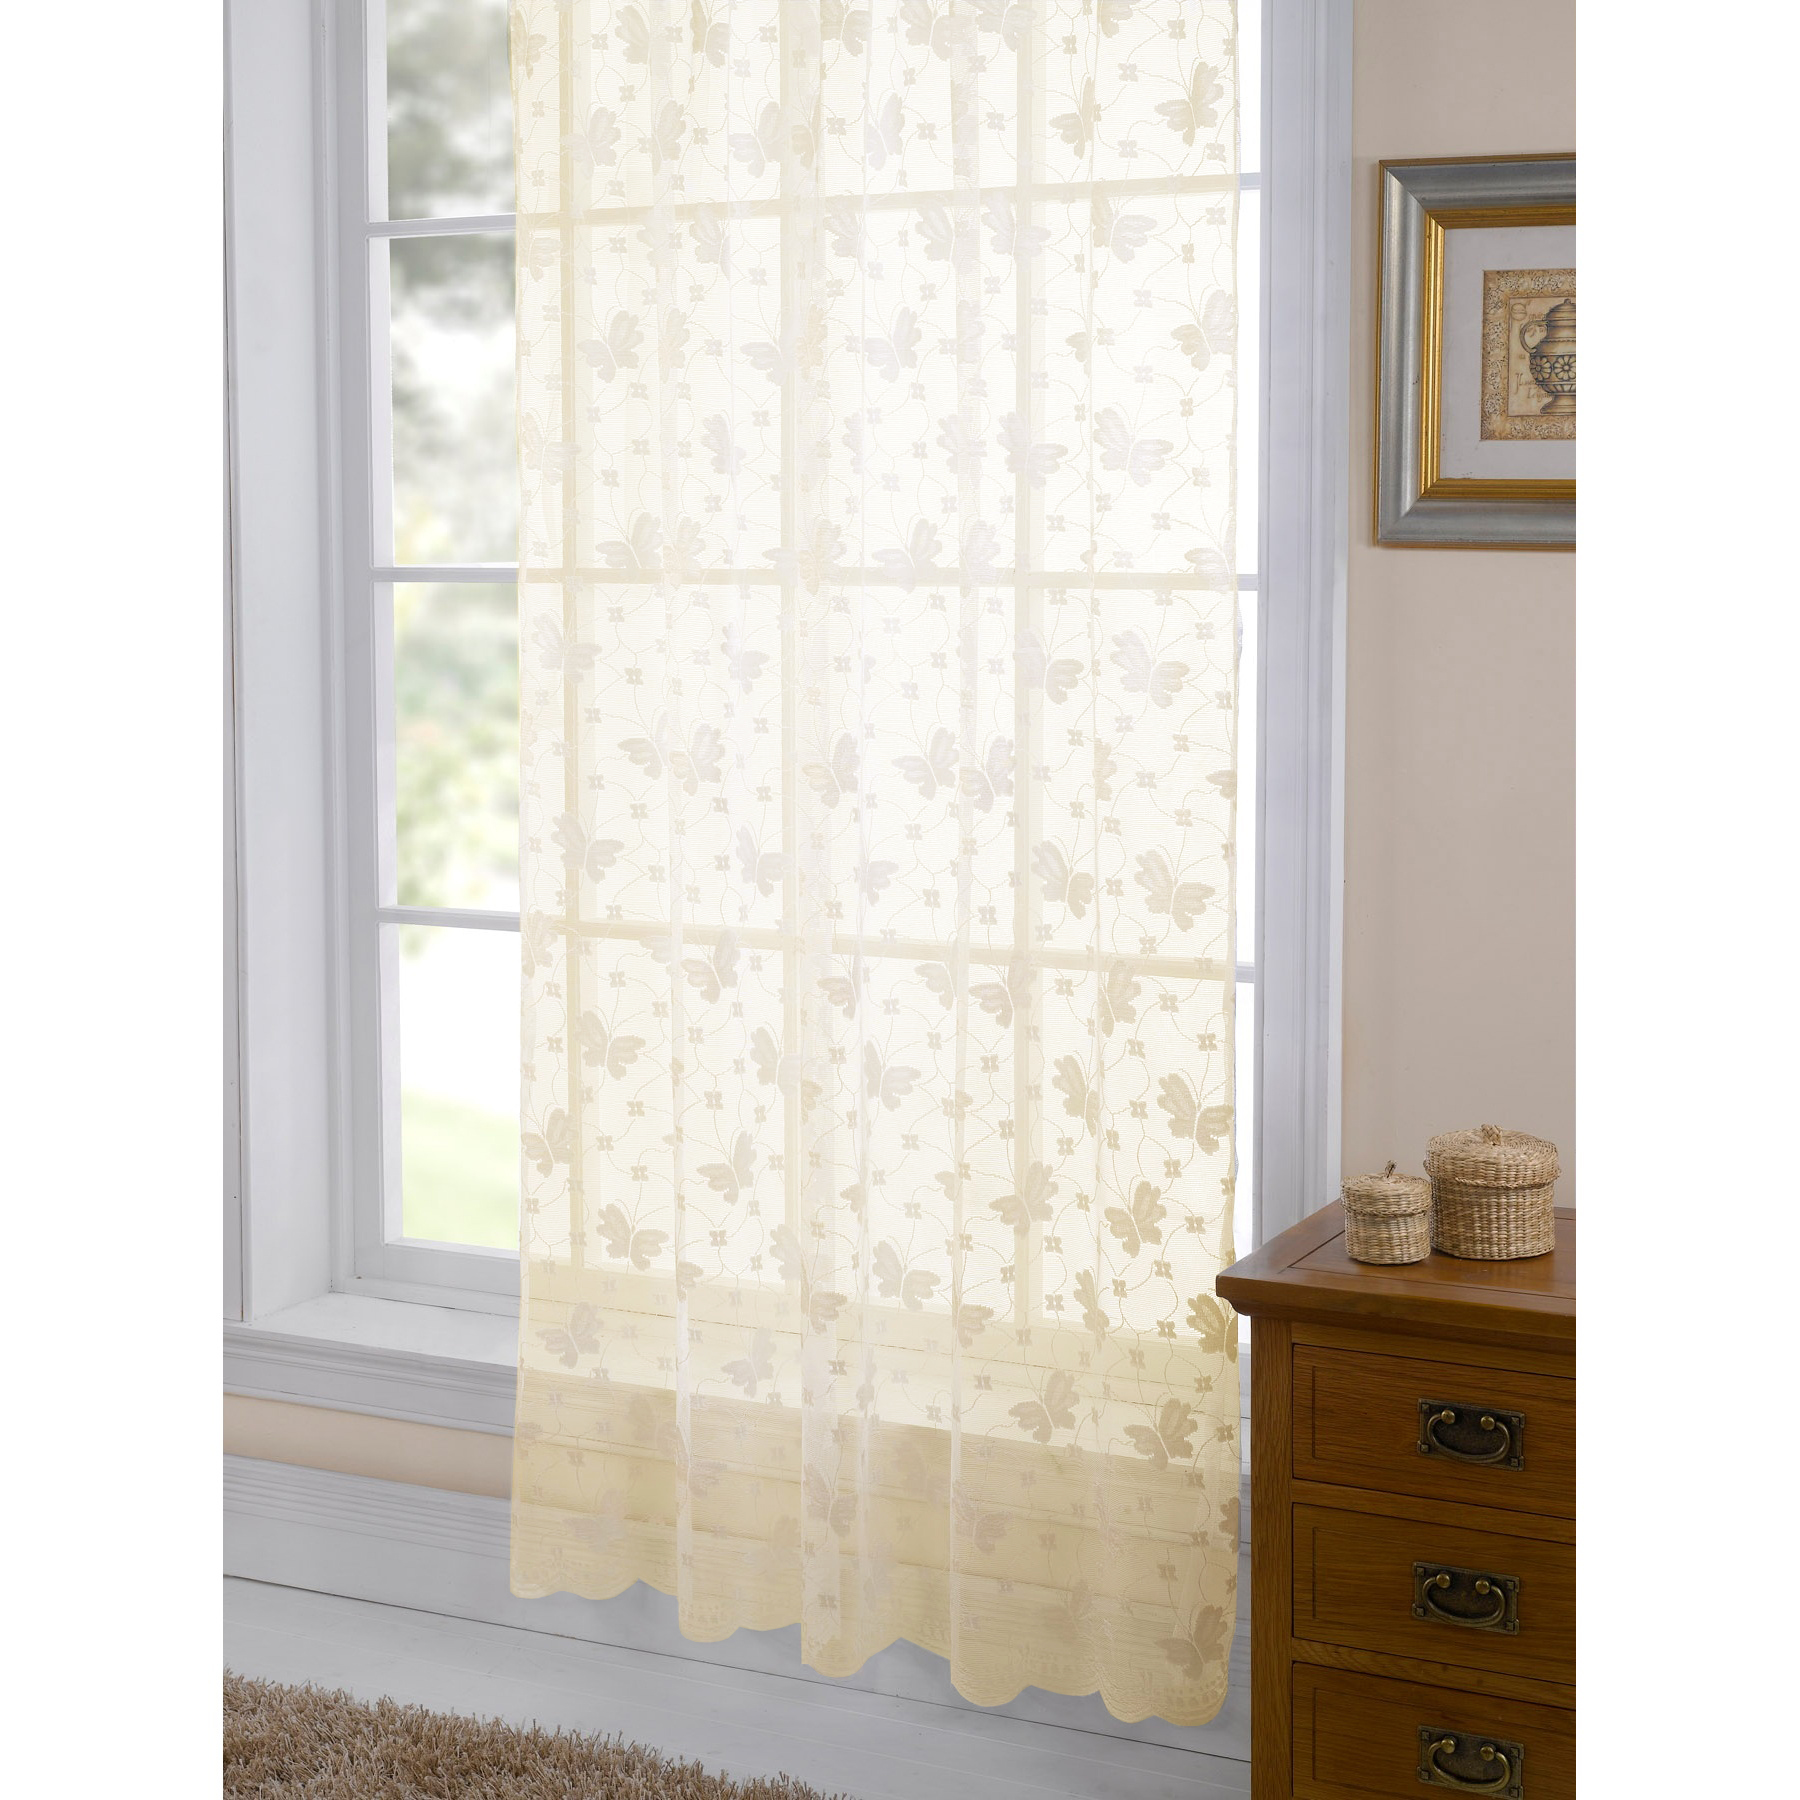 Jardin butterfly patterned lace living room panel window for Patterned sheer curtain panels